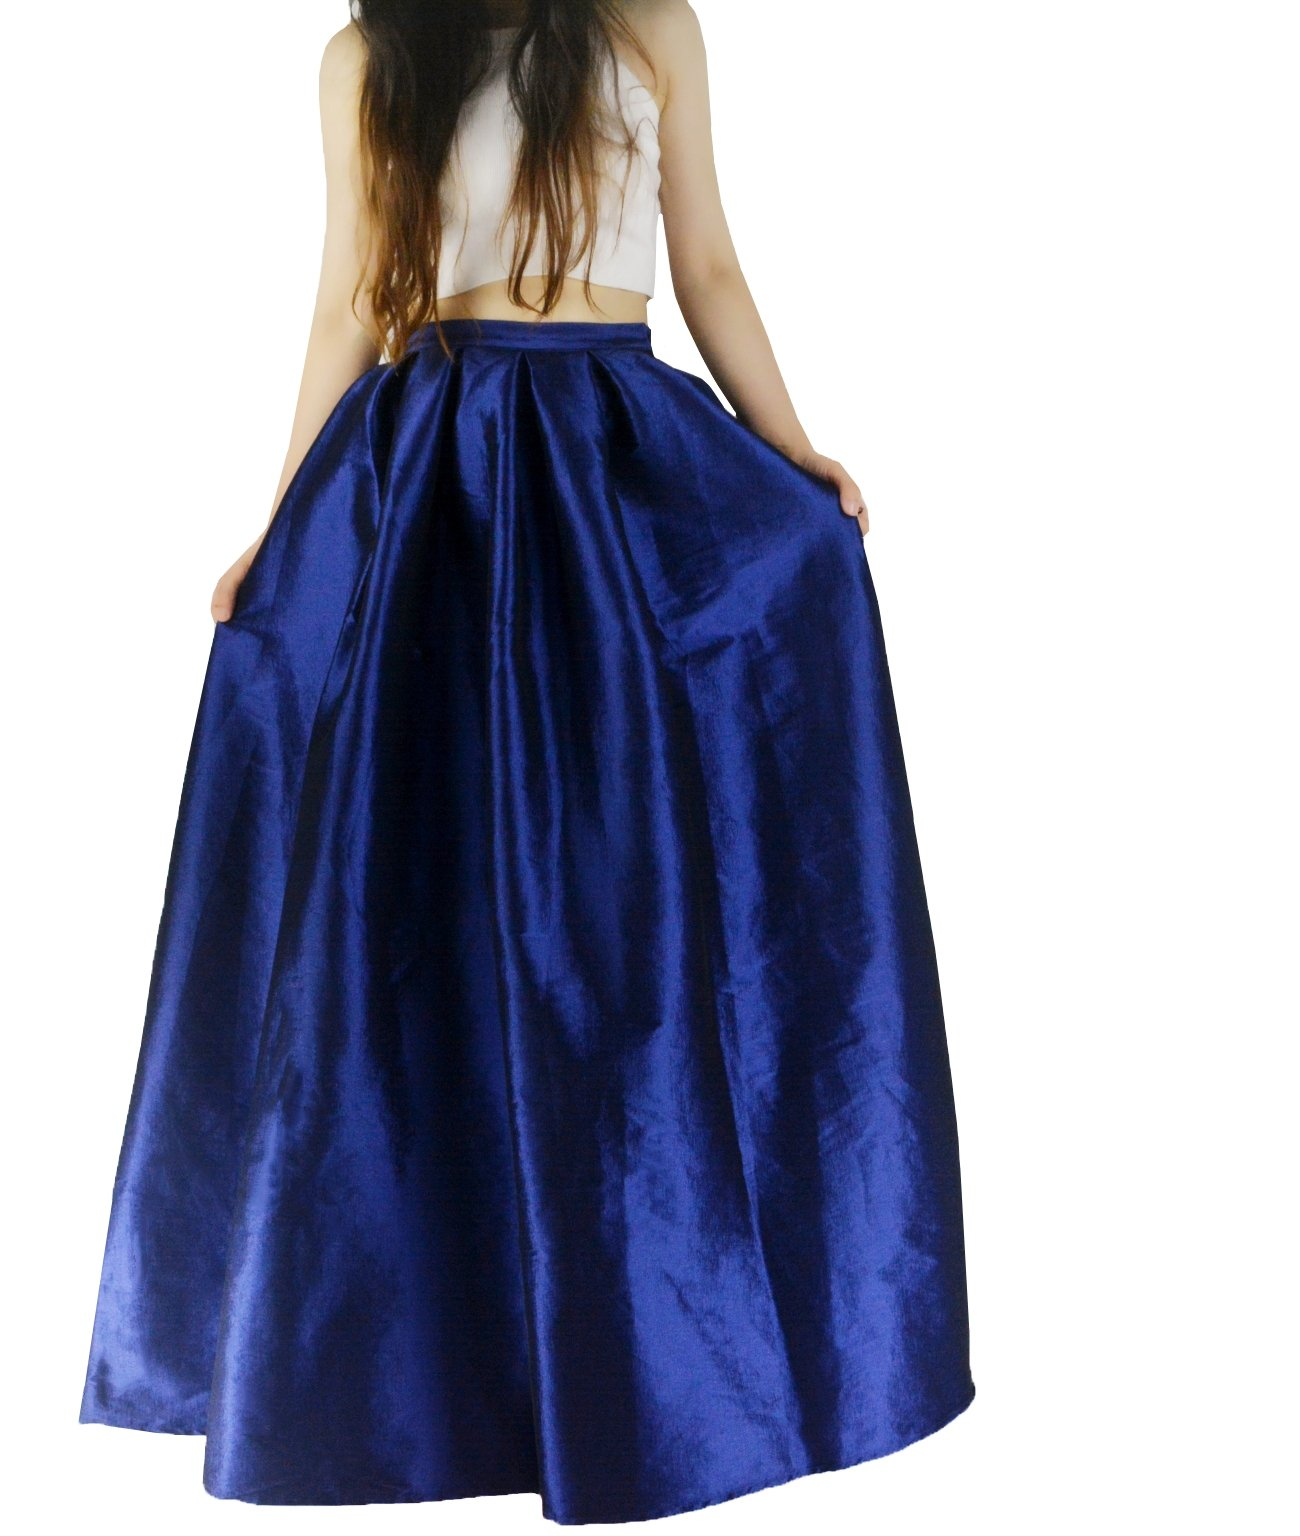 YSJ Women's High Waist A-Line Pleated Maxi Skirts Party Swing Skirt with Pockets (10, Royal Blue)